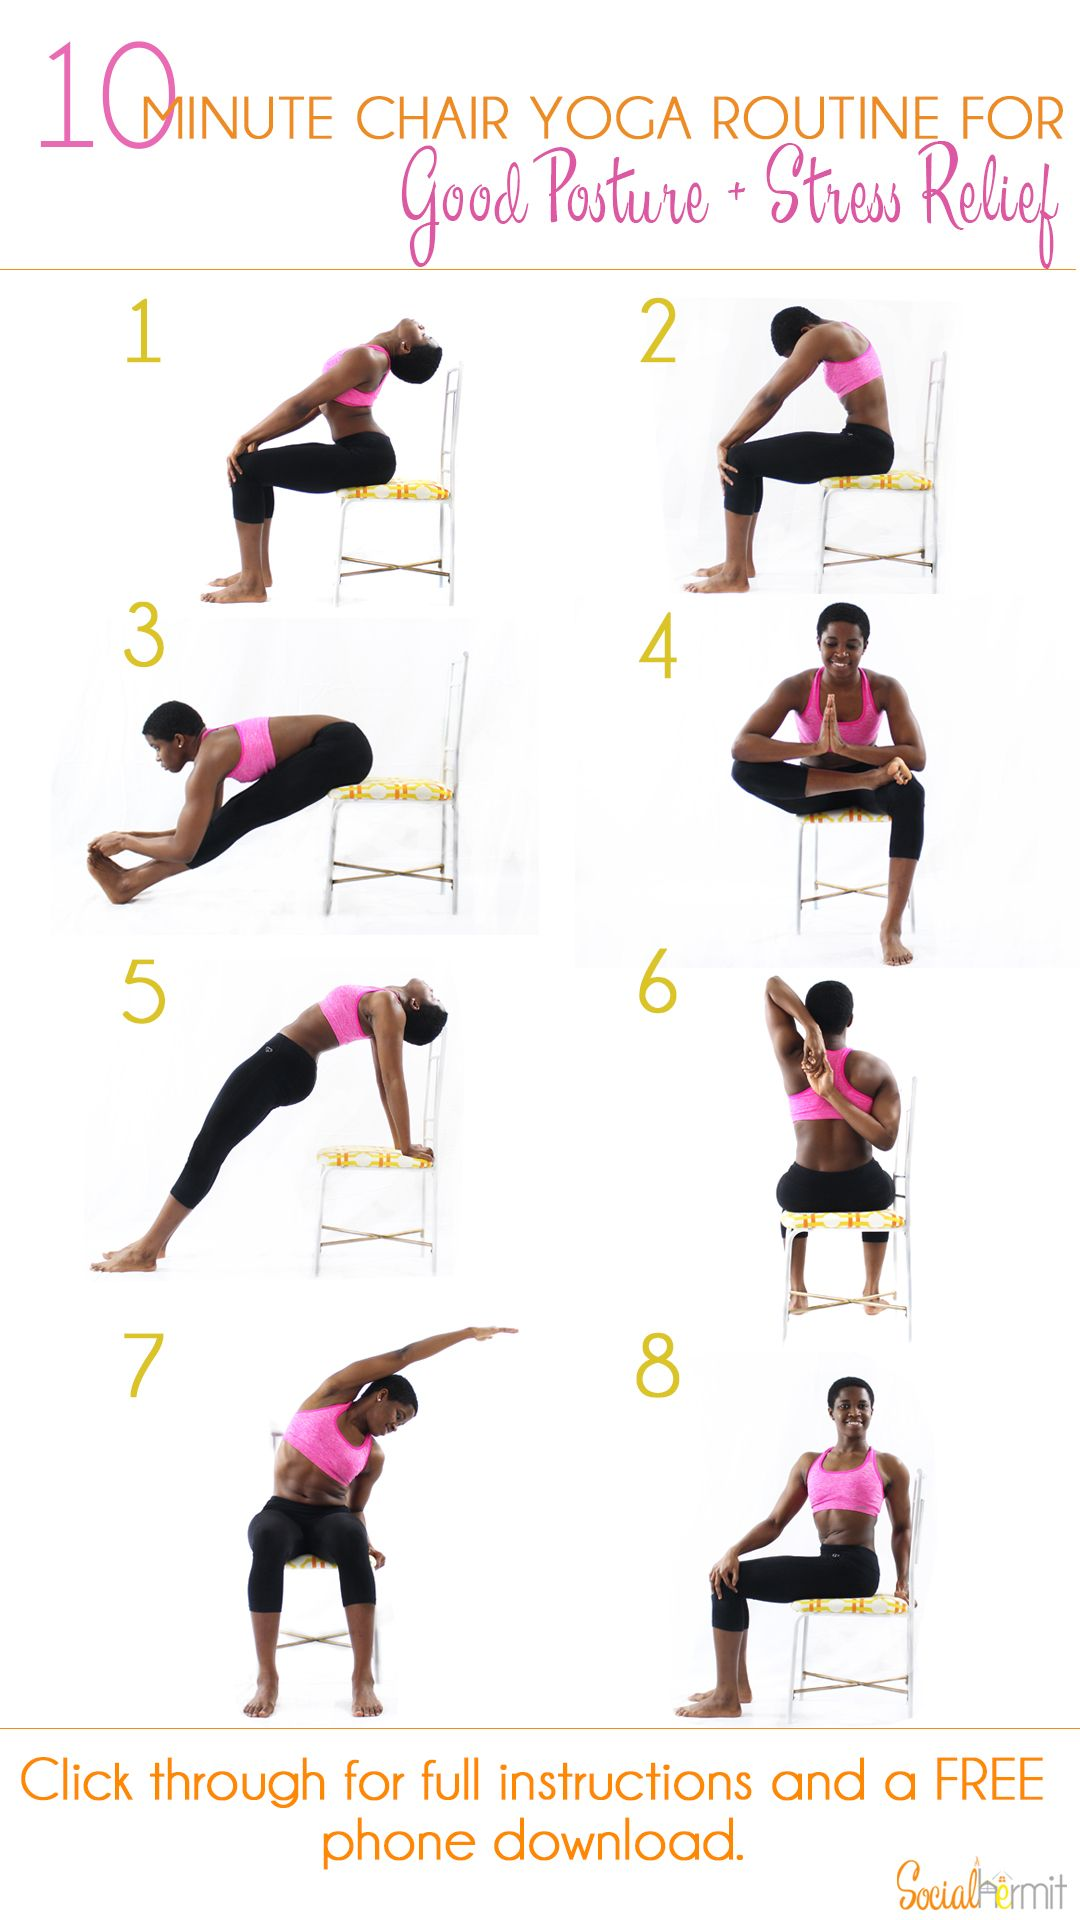 sitting down chair exercises grey weave garden chairs 10 minute yoga routine for good posture and stress